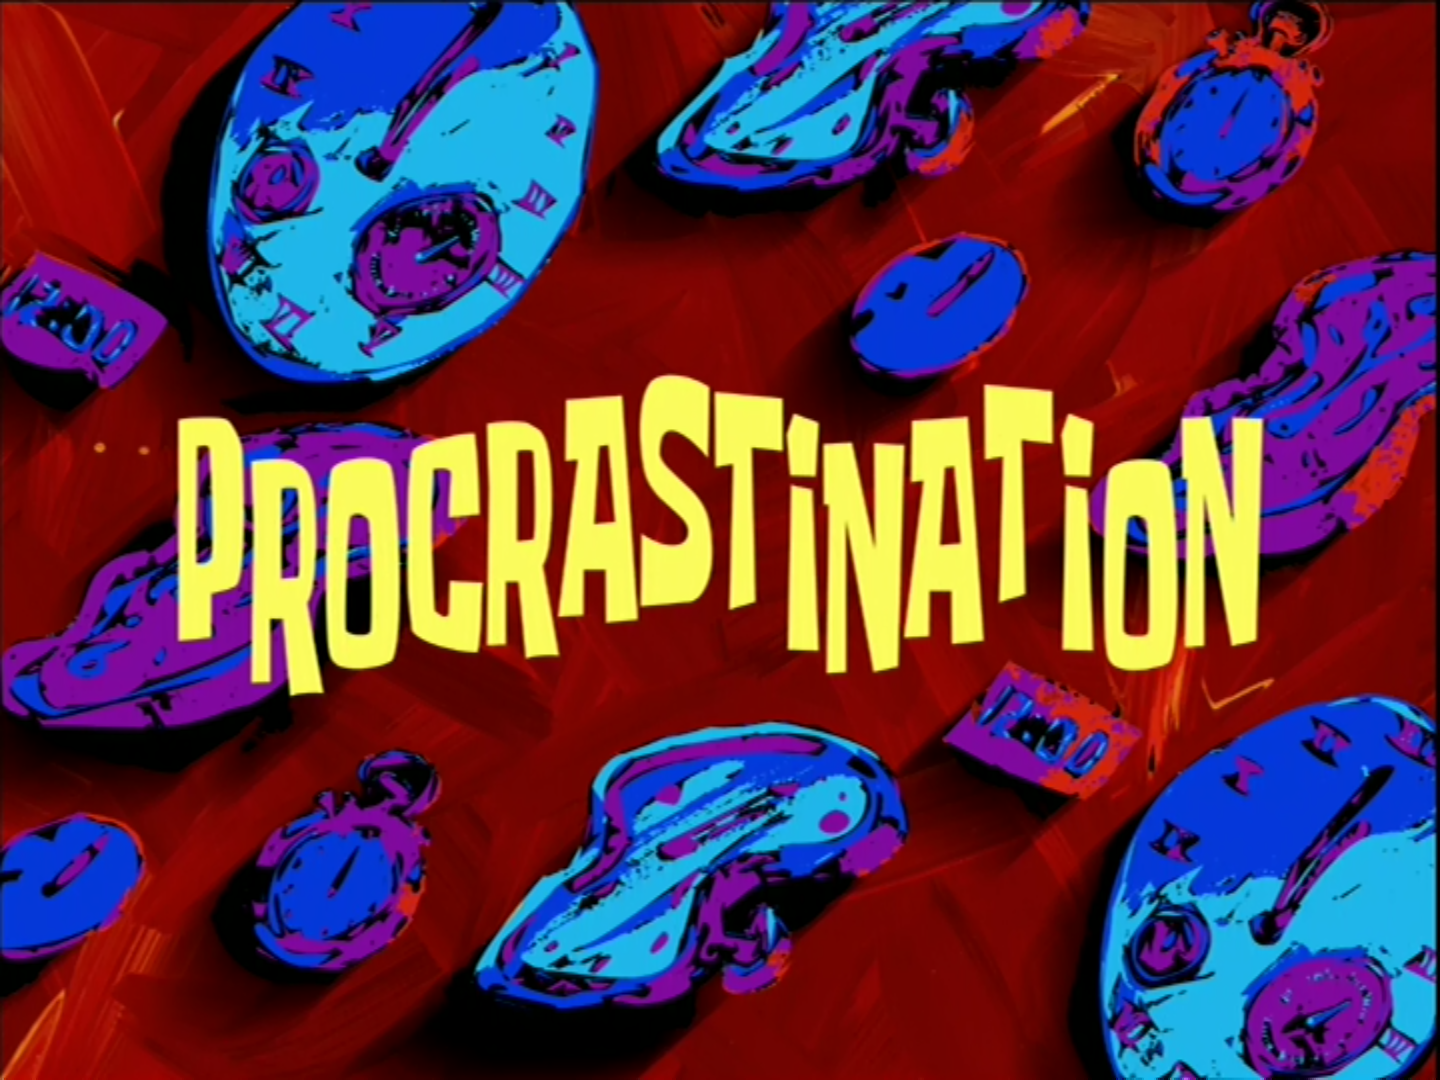 009 Procrastinationtranscript Encyclopedia Spongebobia Fandom Spongebob Writing Essay The Latestcb201806220 Gif Font For Hours Meme Rap Surprising Pencil Full